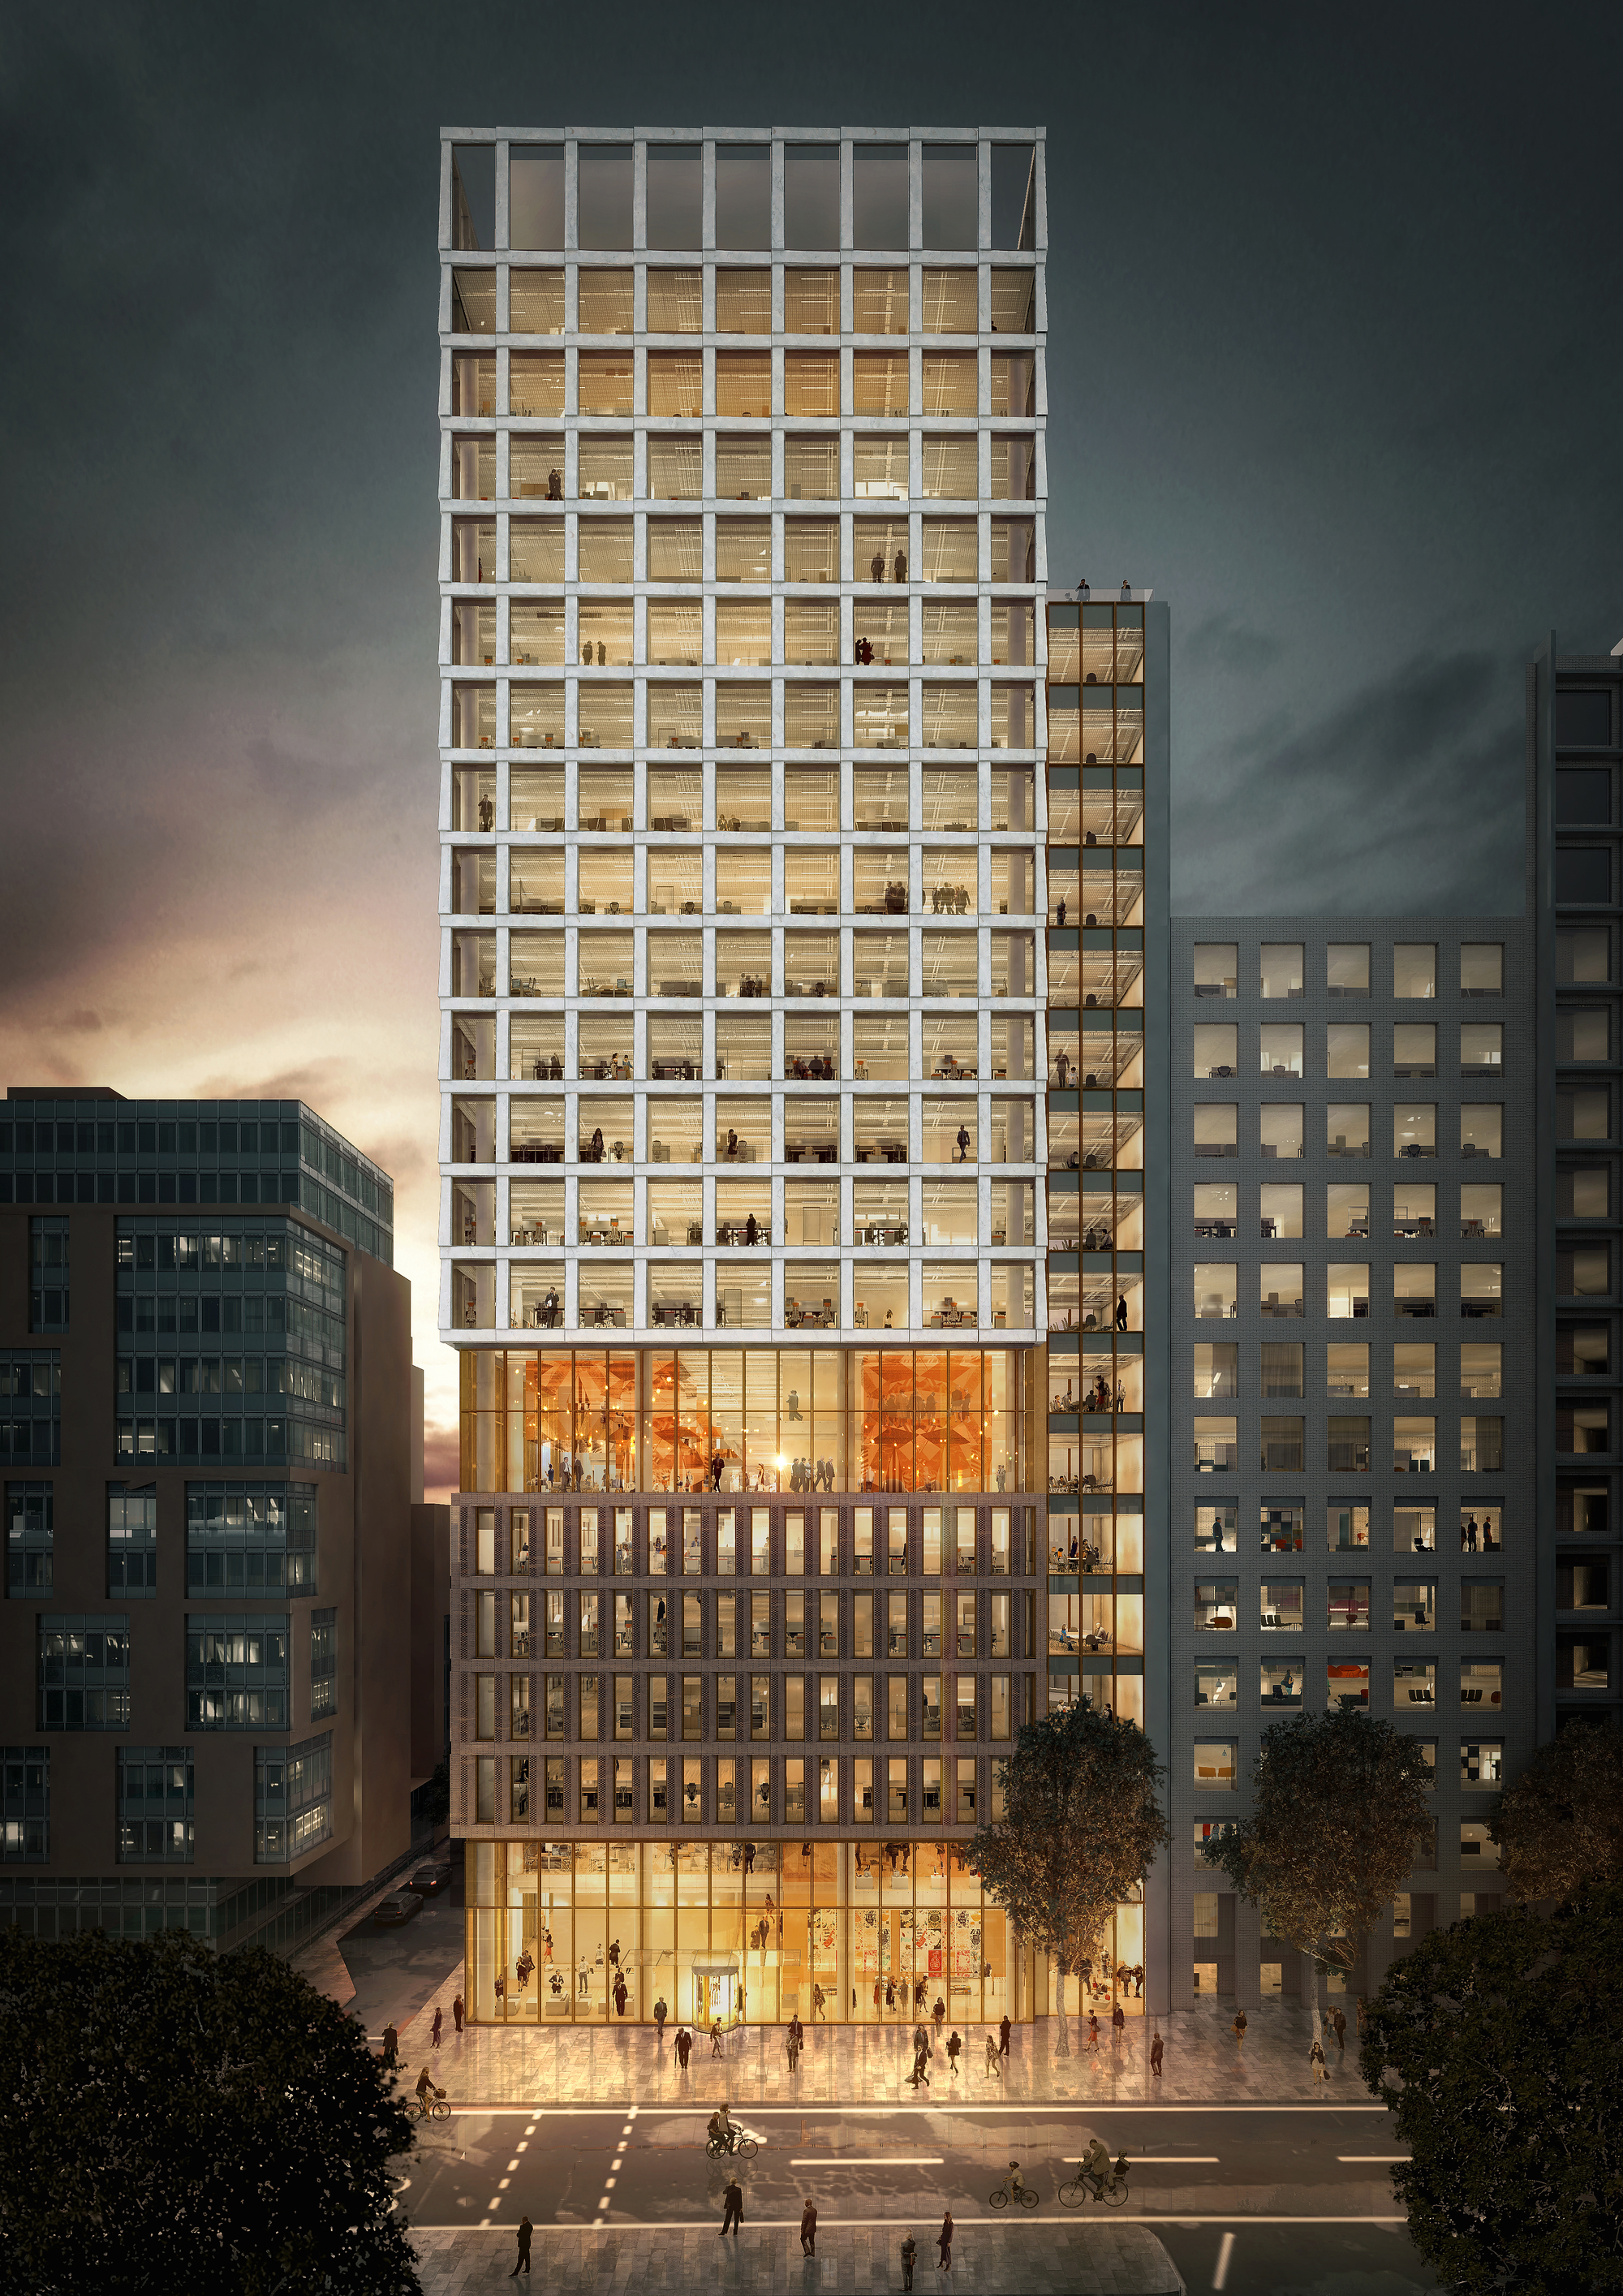 Gallery of plp architecture s proposed office building for Architecte tower bridge